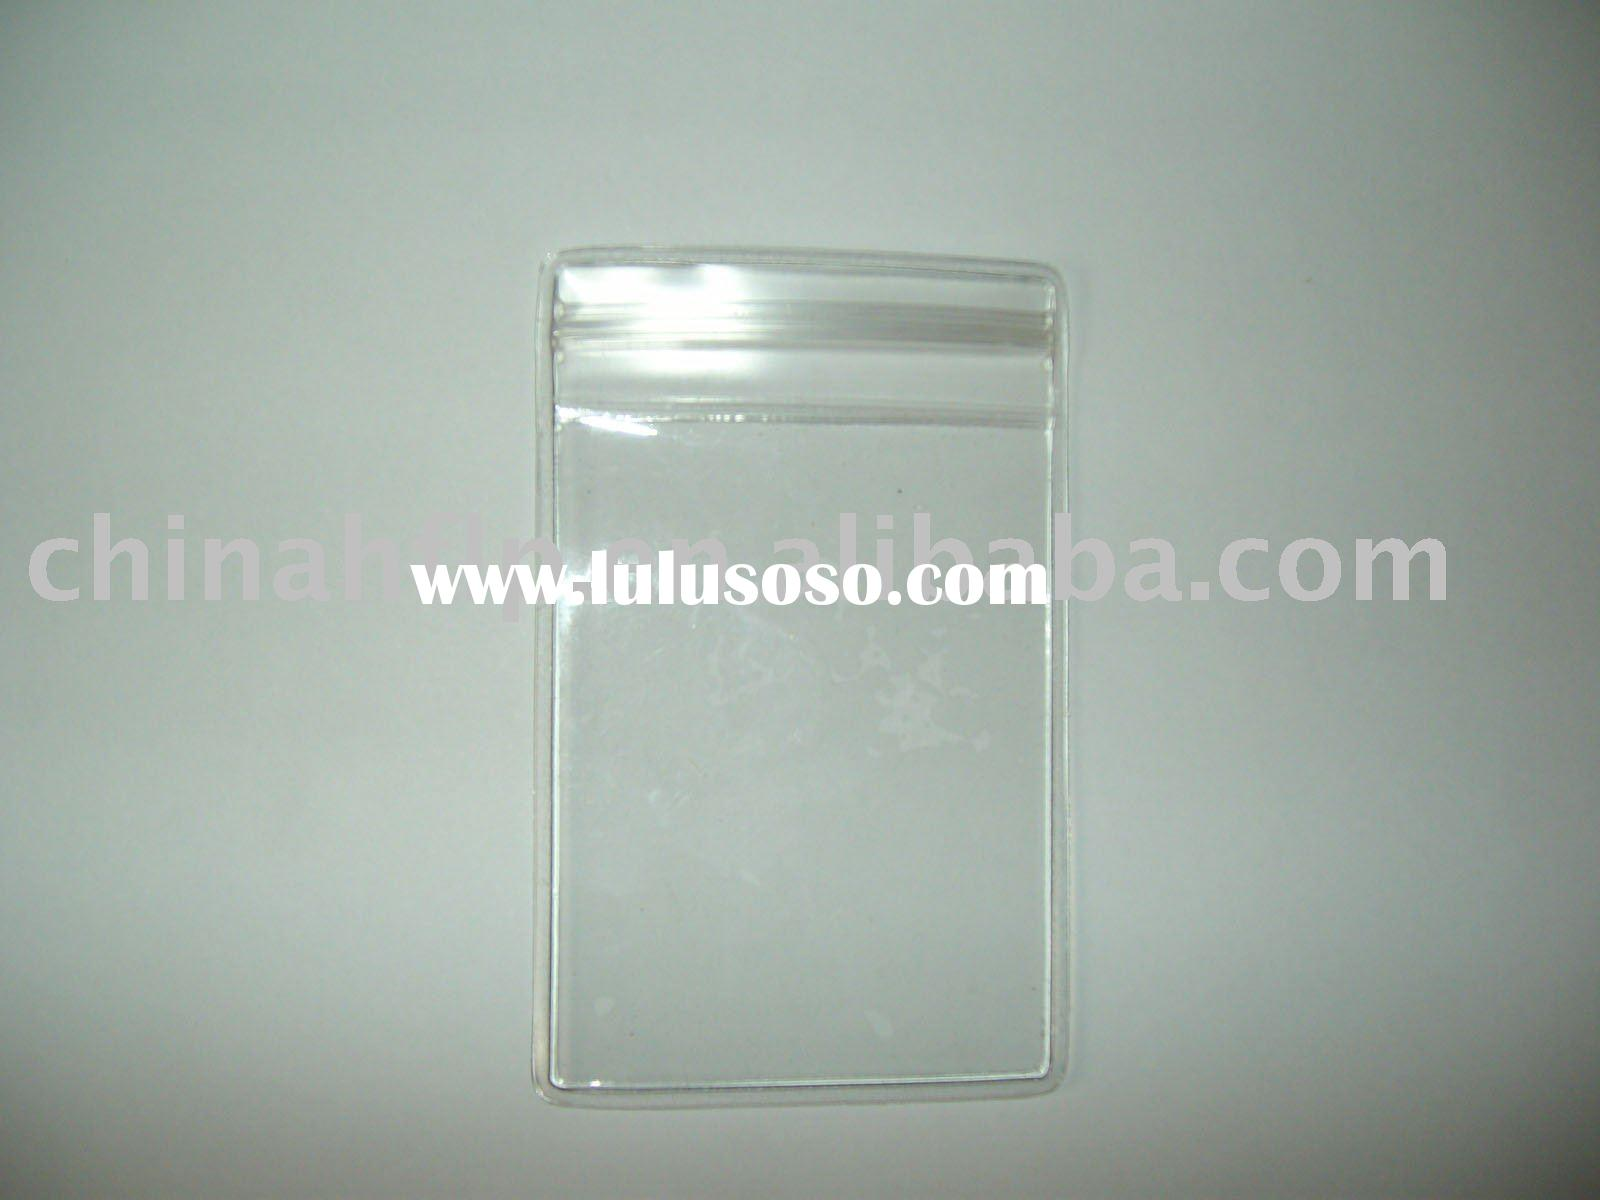 clear soft plastic waterproof vertical badge id card holder